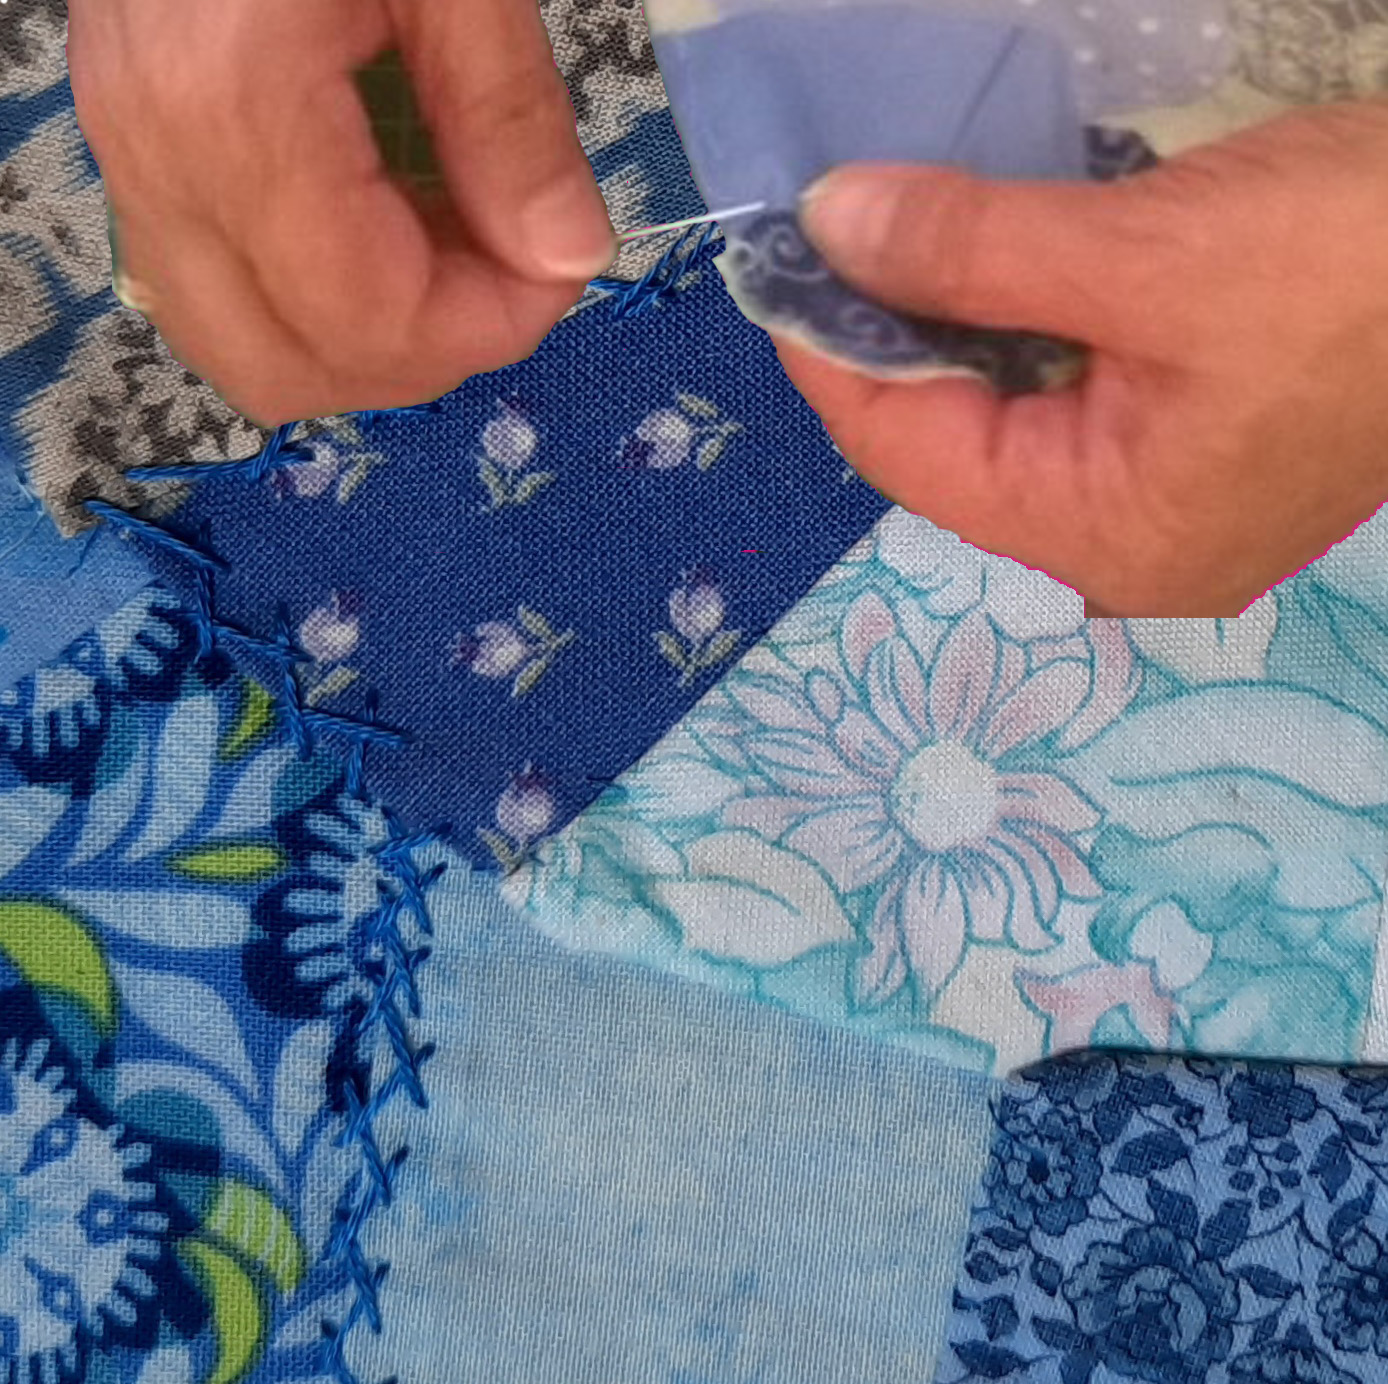 Hands holding a needle and embroidery thread, the person is working on a piece of crazy patchwork